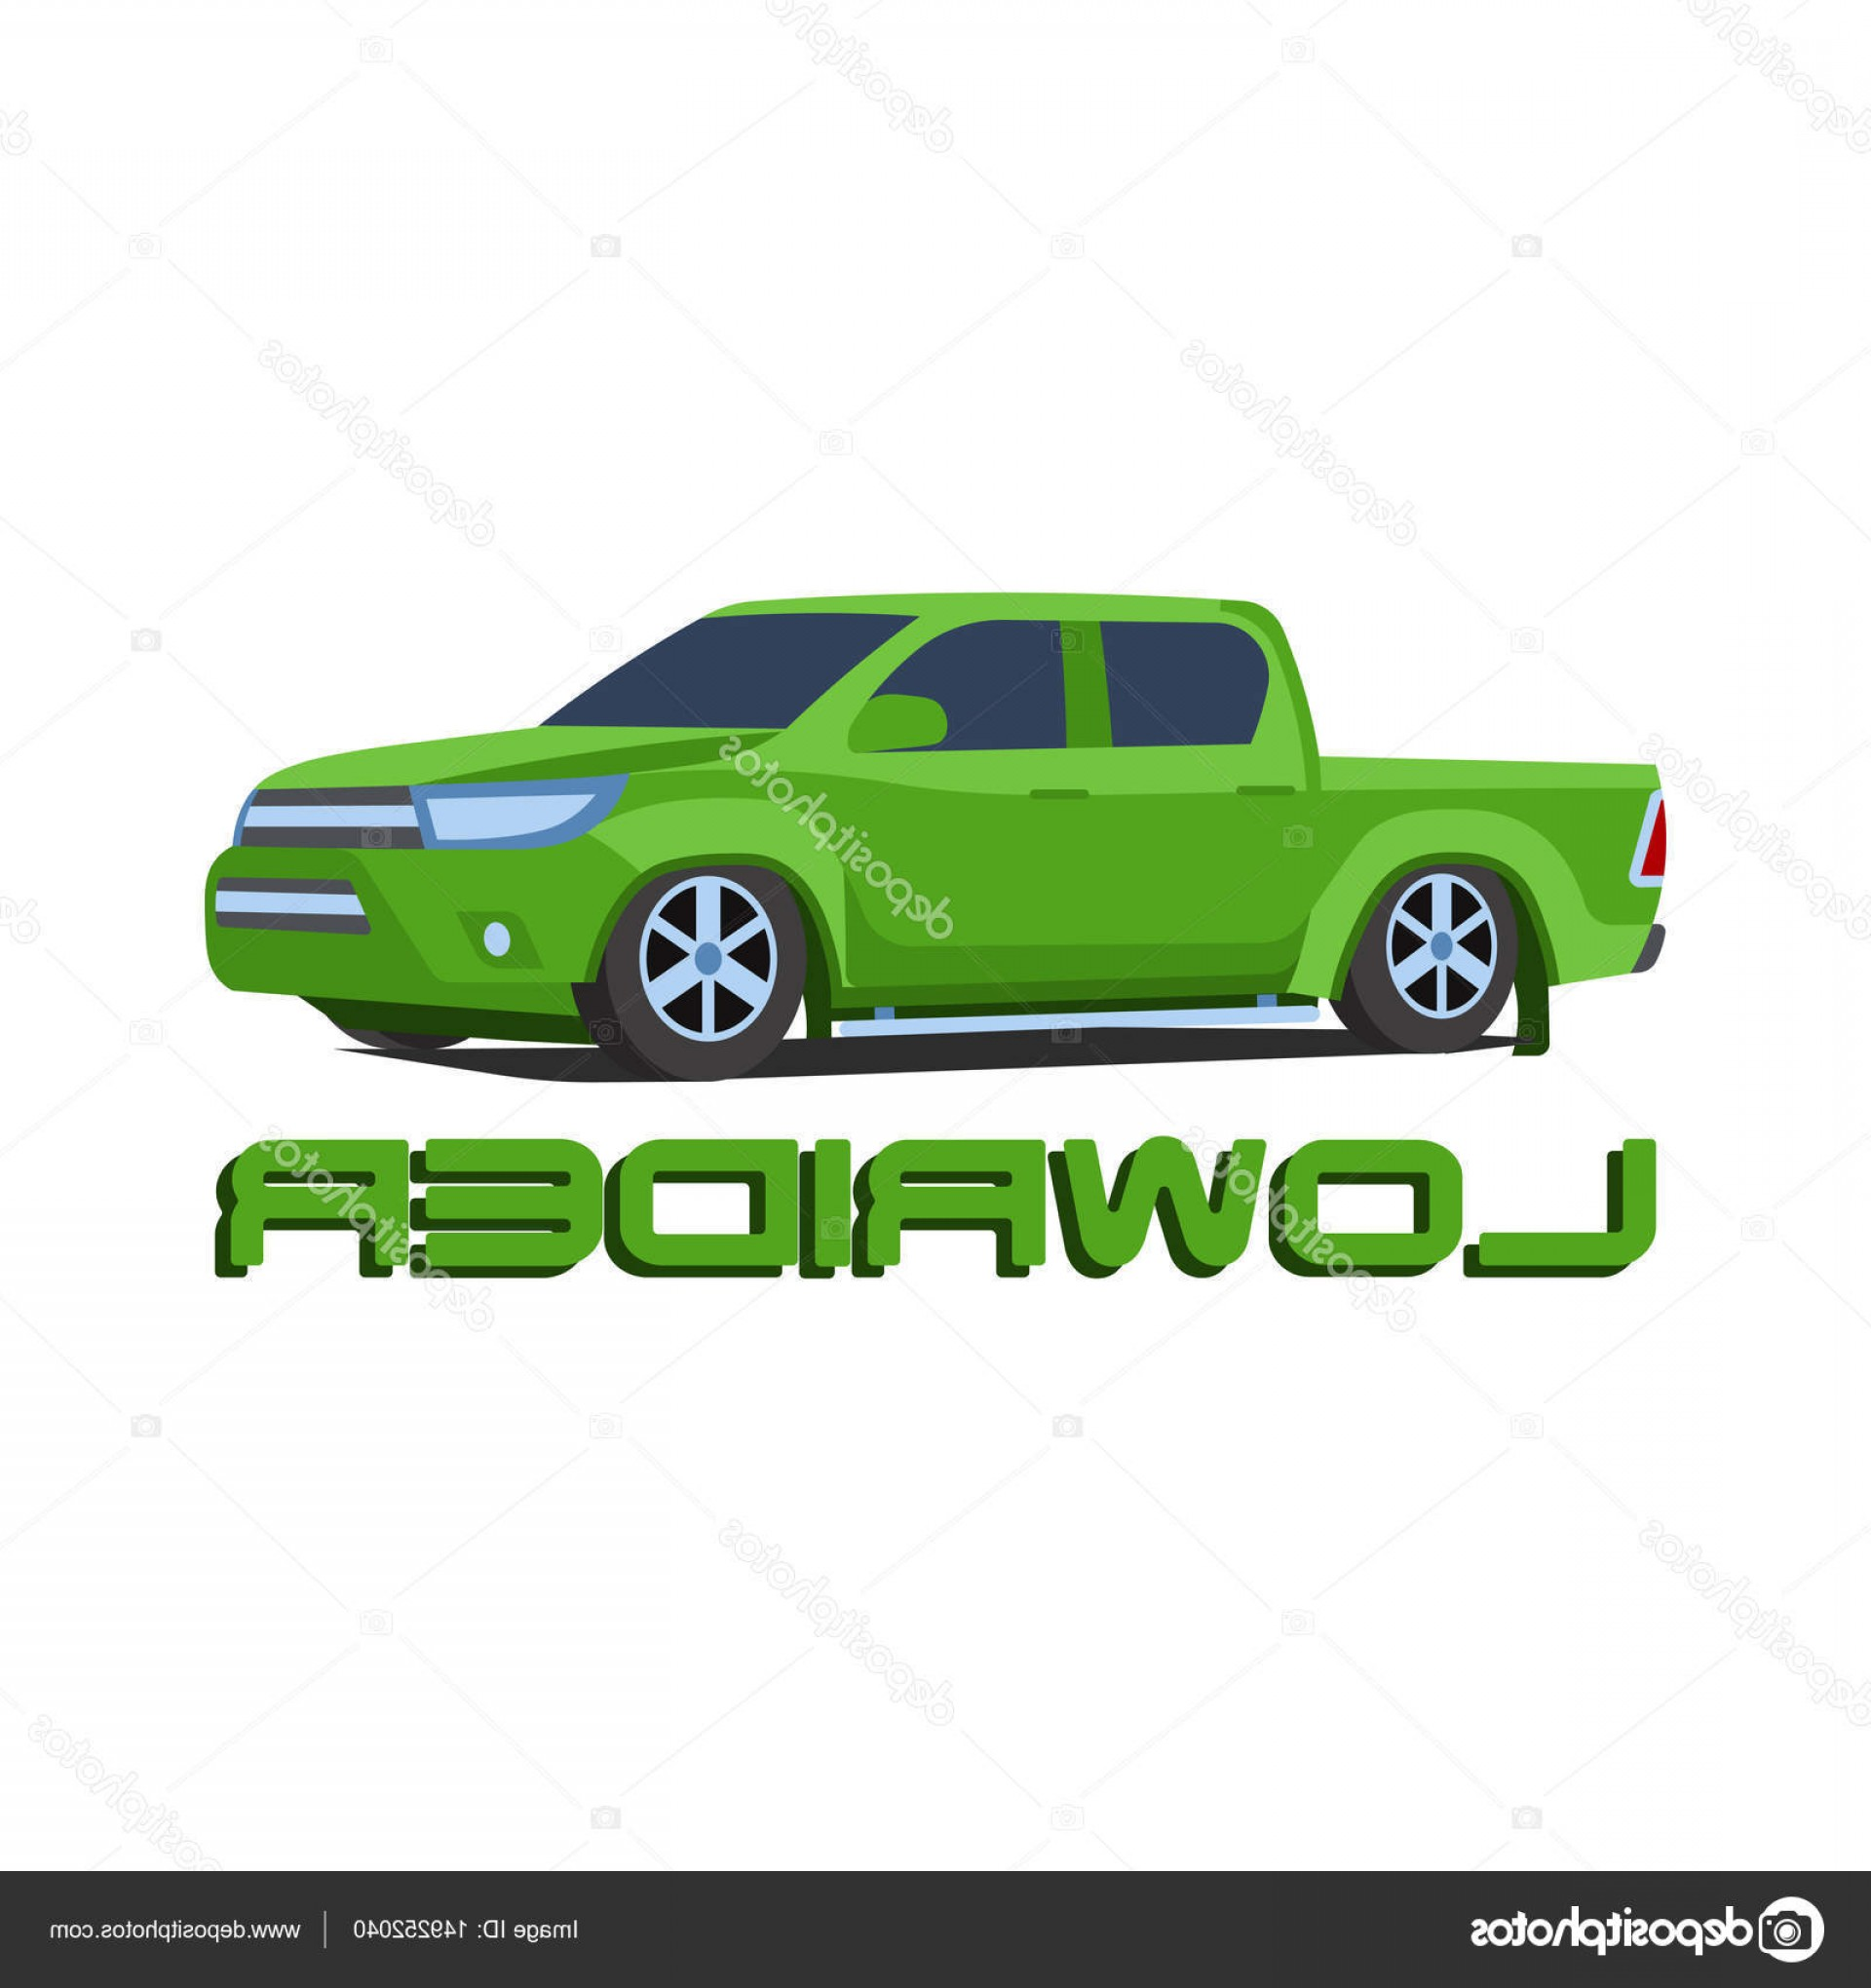 Lowrider Vector: Stock Illustration Gree Pickup Truck Lowrider Car